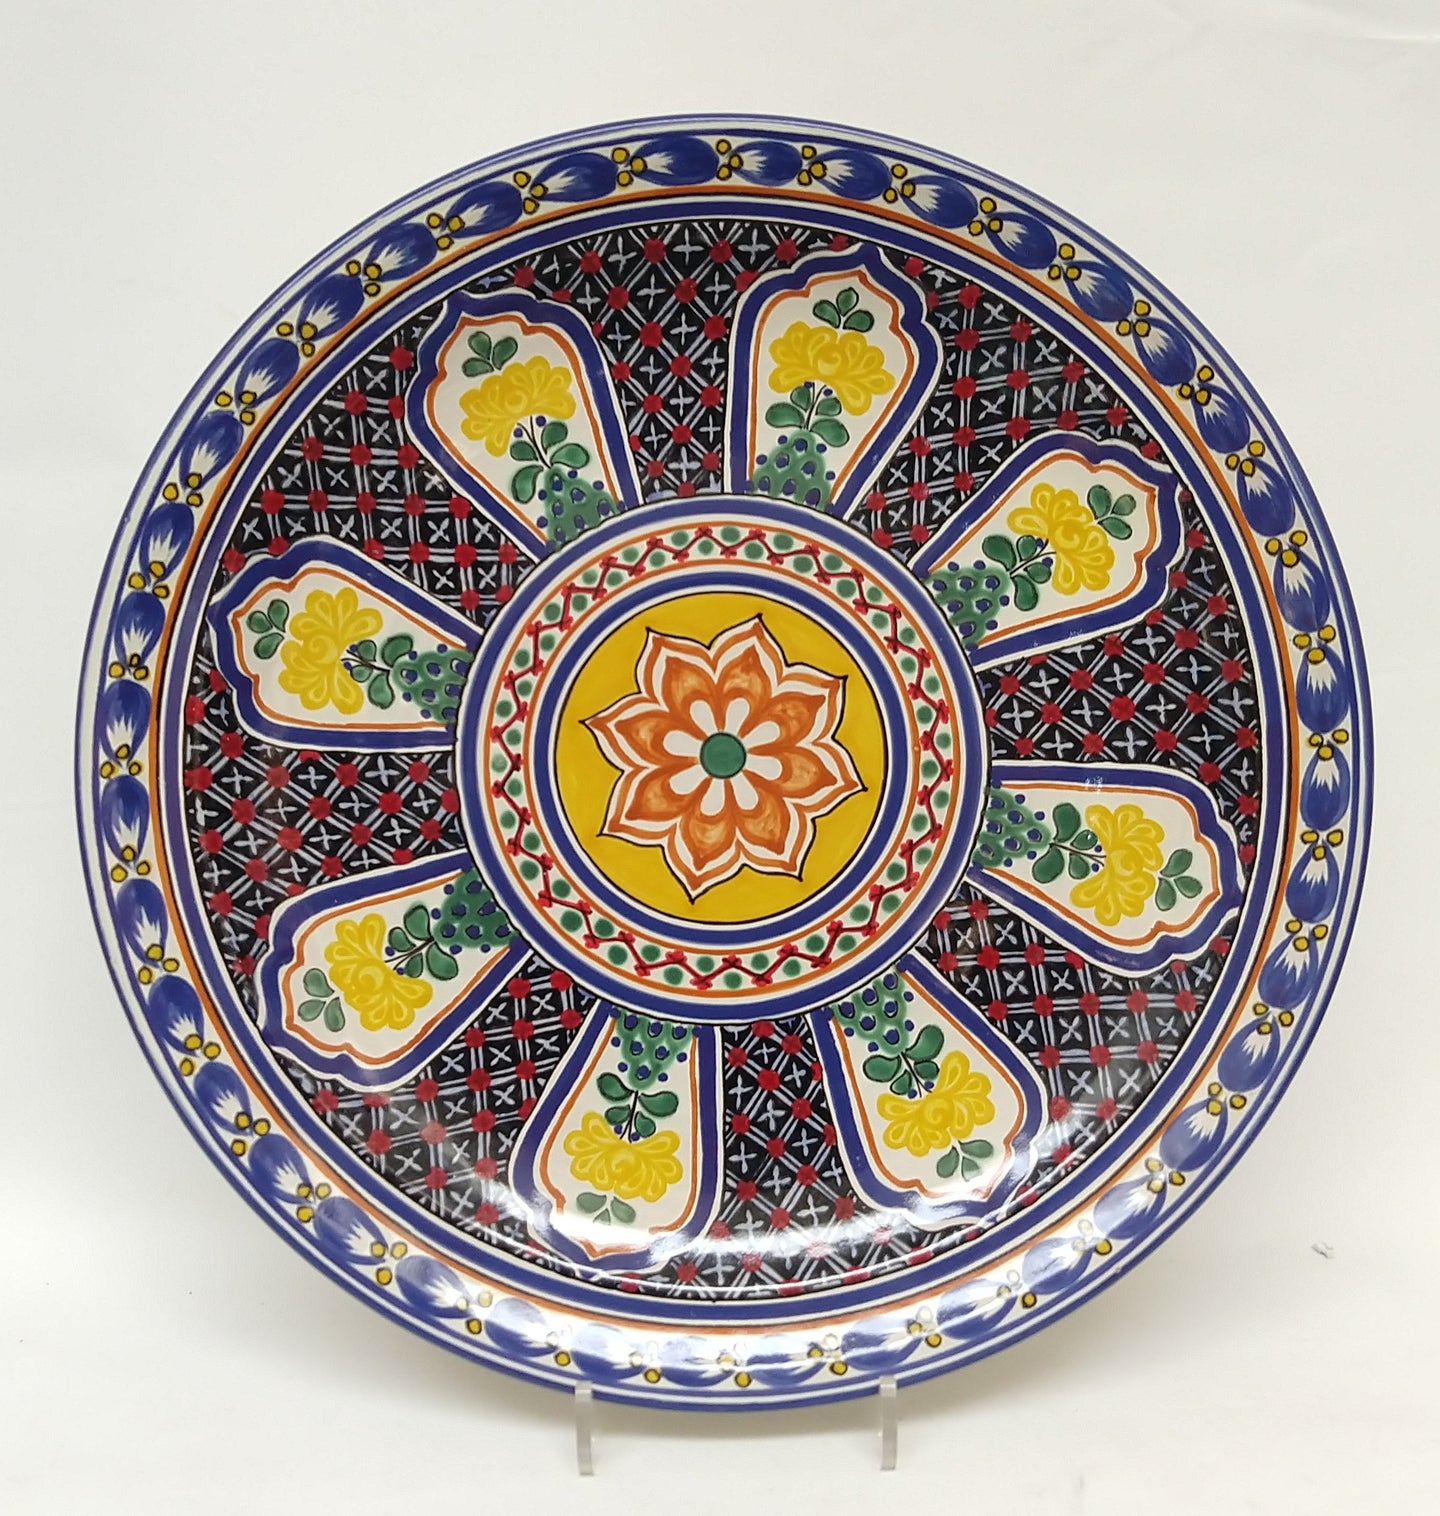 Decorative Platter Morisco Pattern 17.7